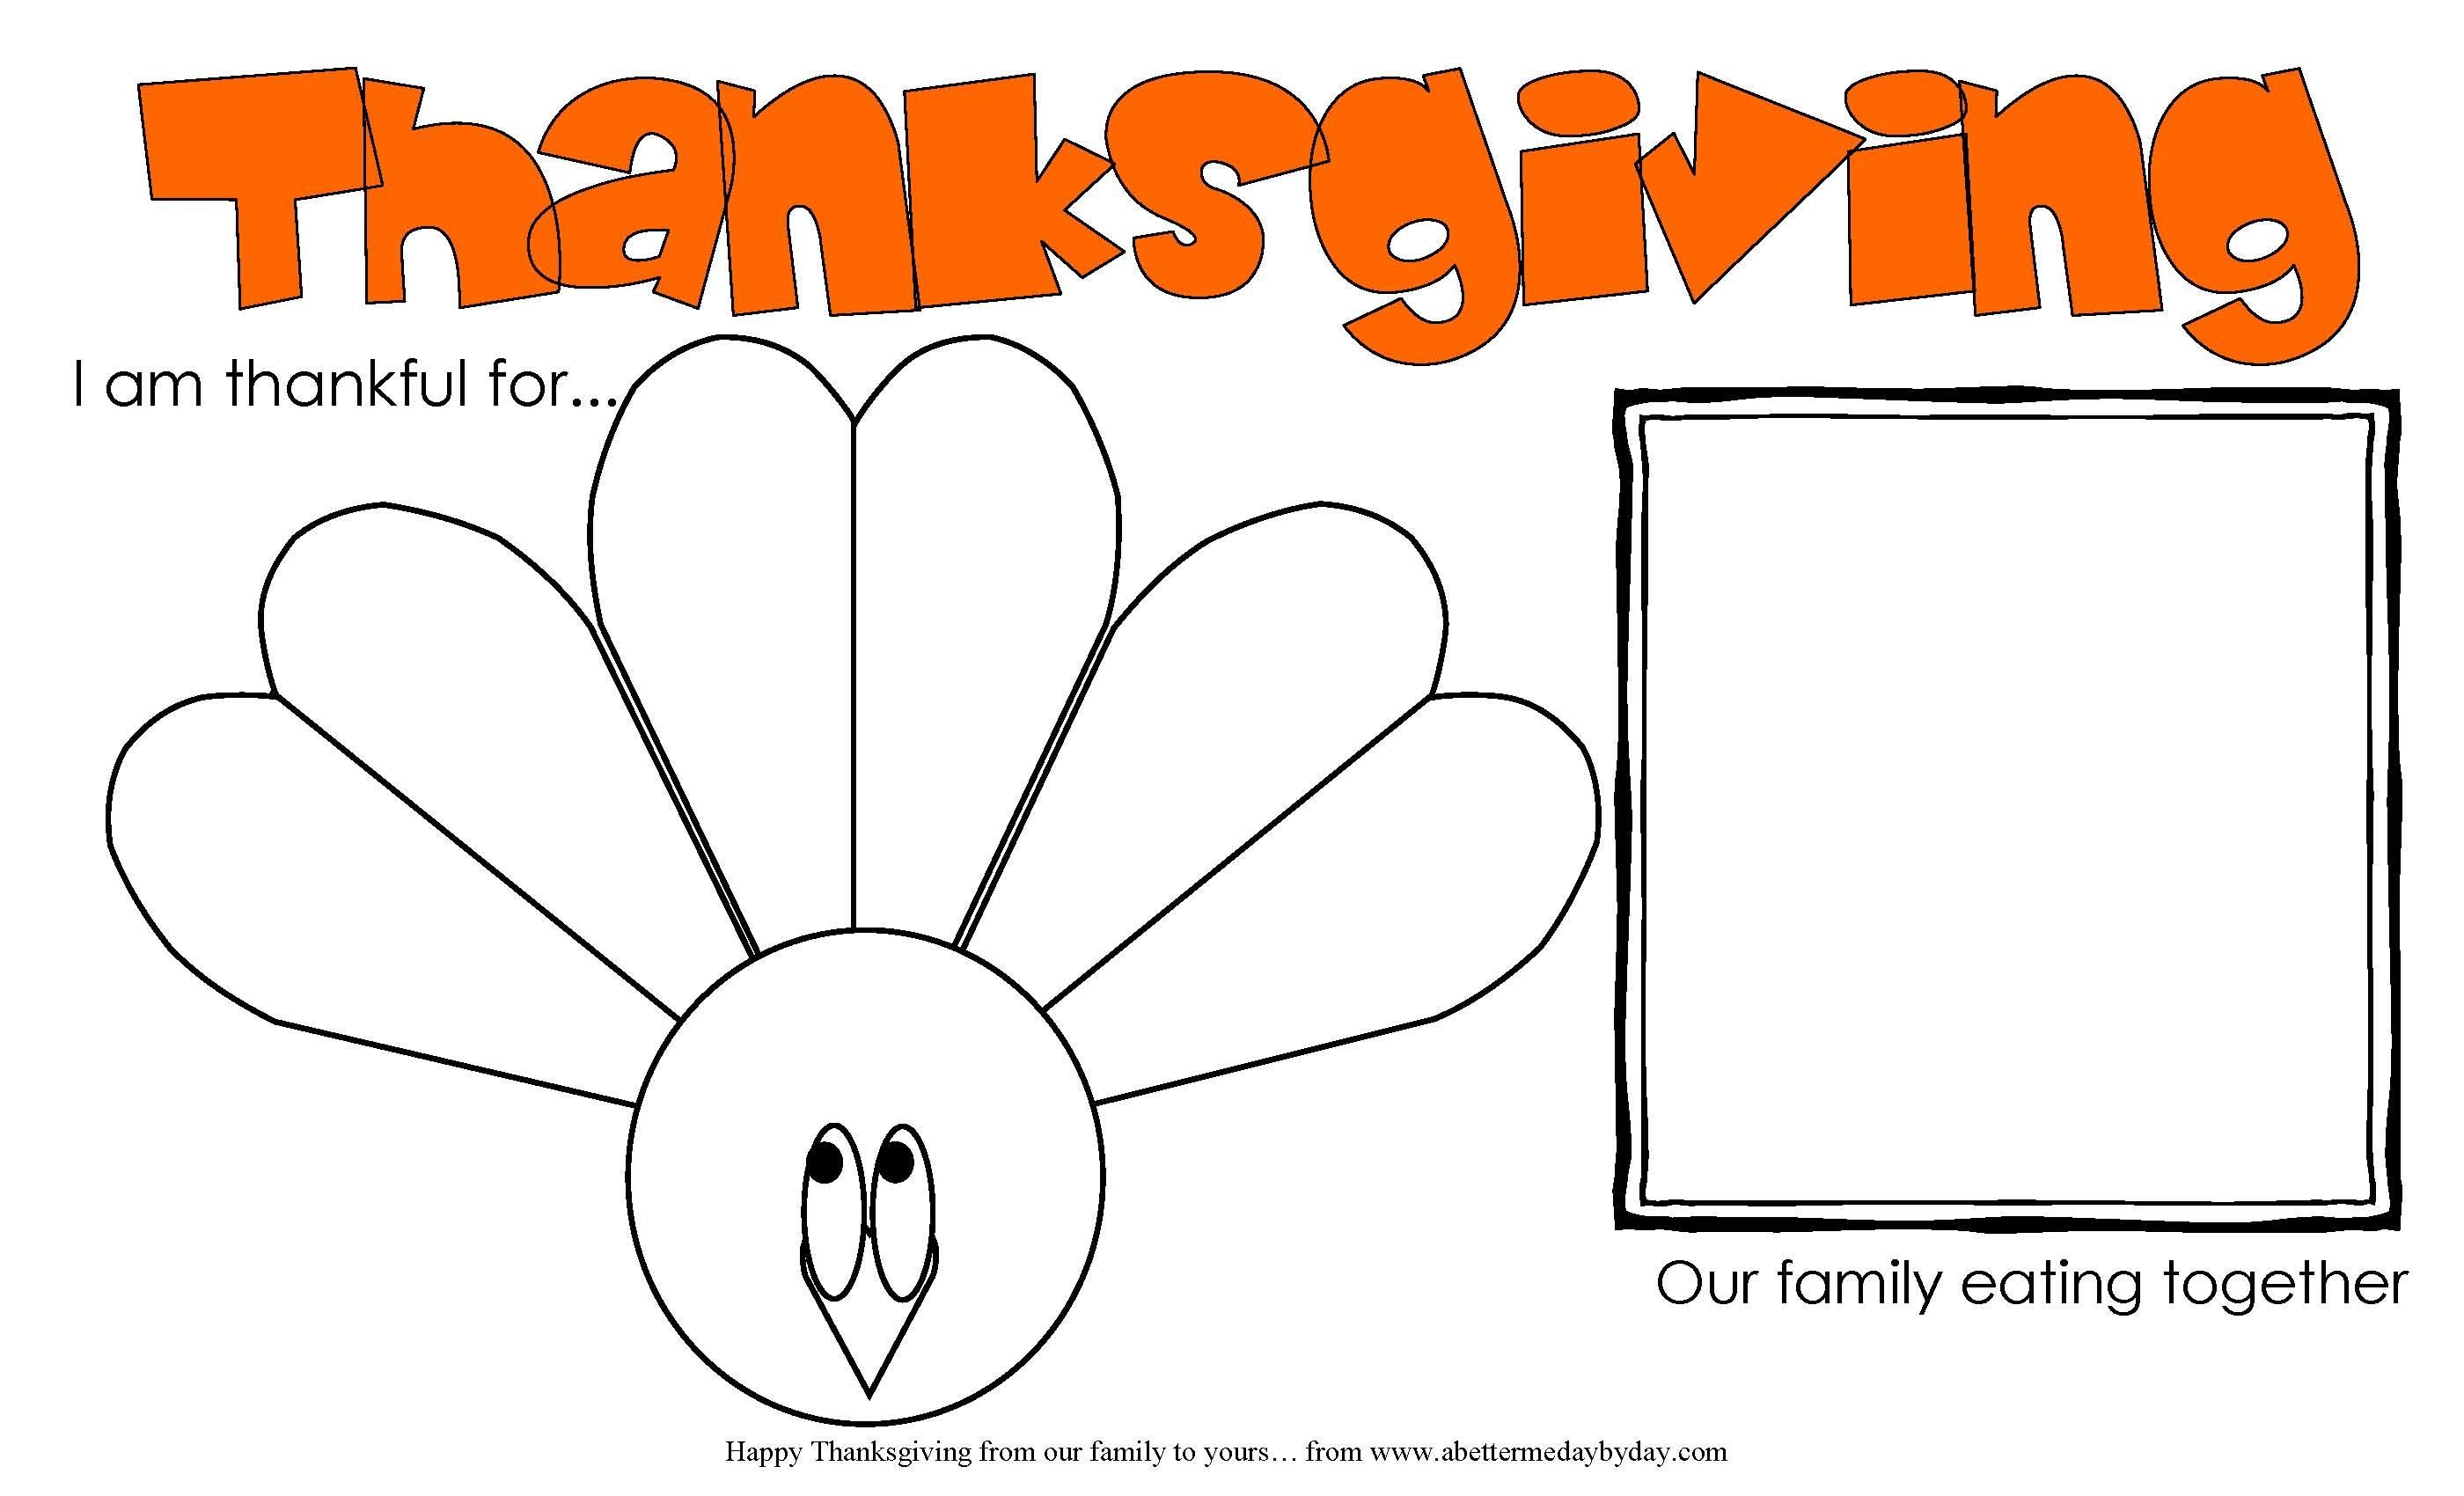 Free Printable: Thanksgiving Activity Place Mat For Kids And Adults - Free Printable Thanksgiving Activities